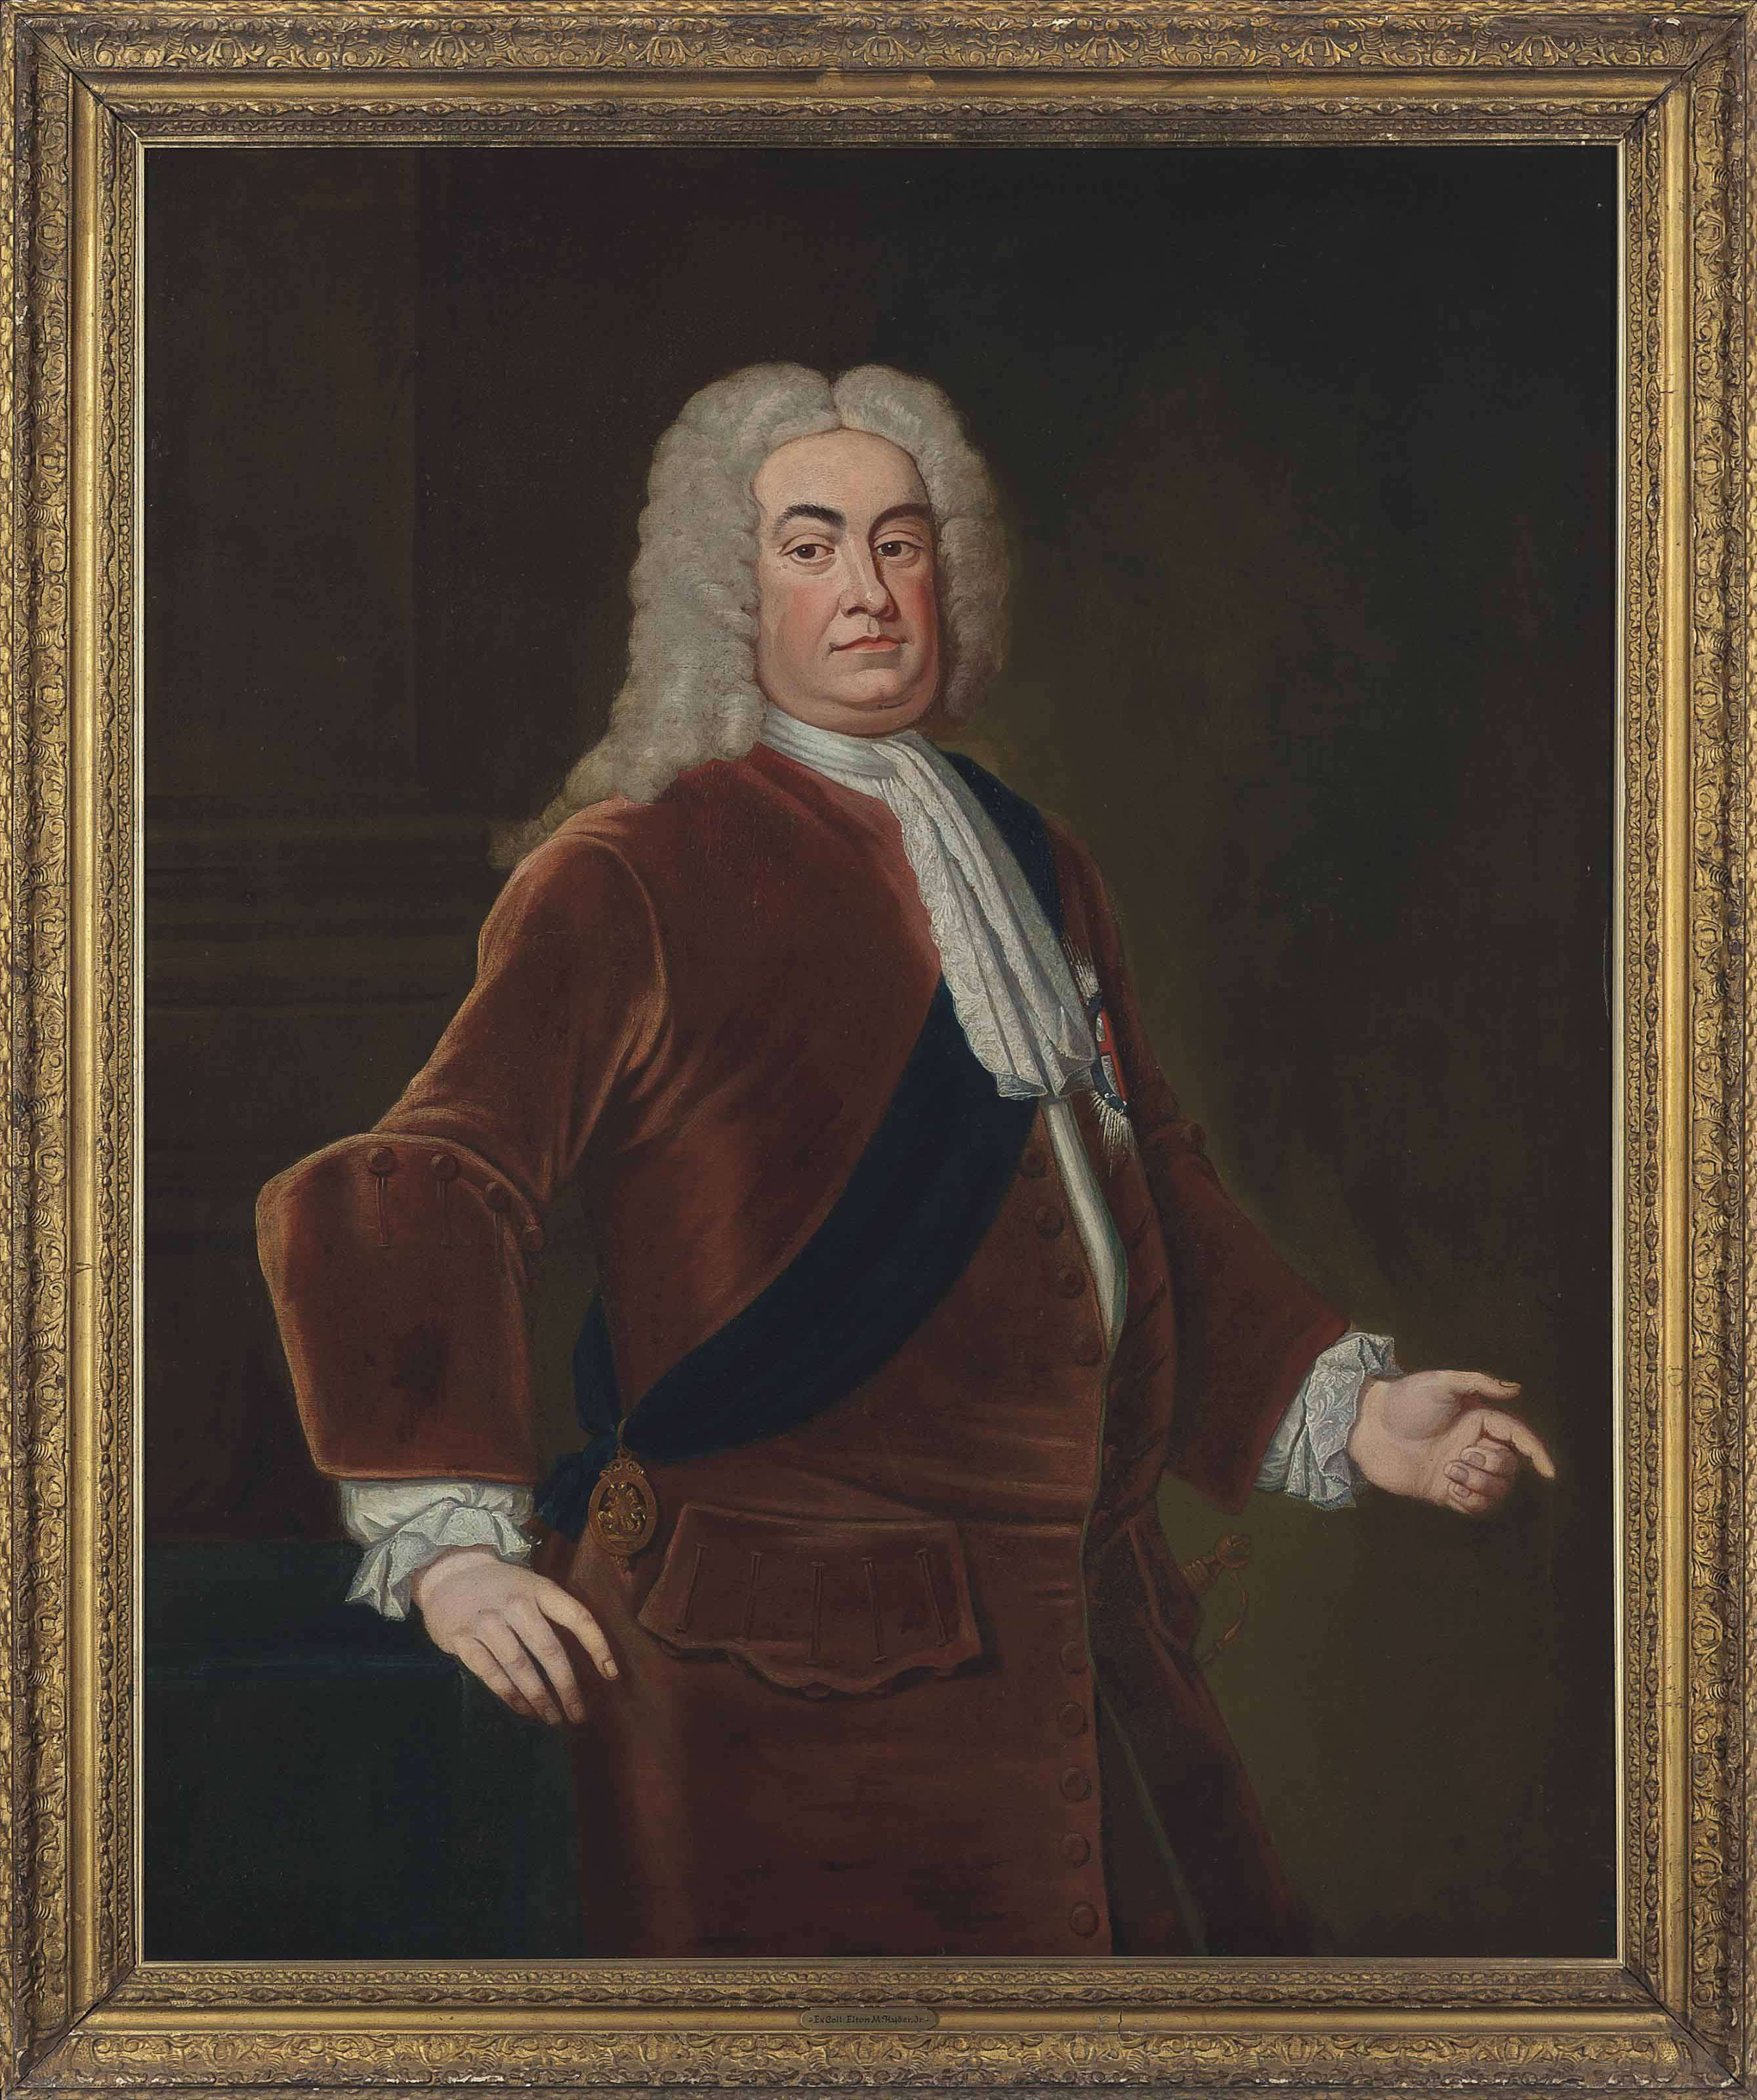 Portrait of Sir Robert Walpole, 1st Earl of Orford (1676-1745), half-length, wearing the Star and Sash of the Order of the Garter